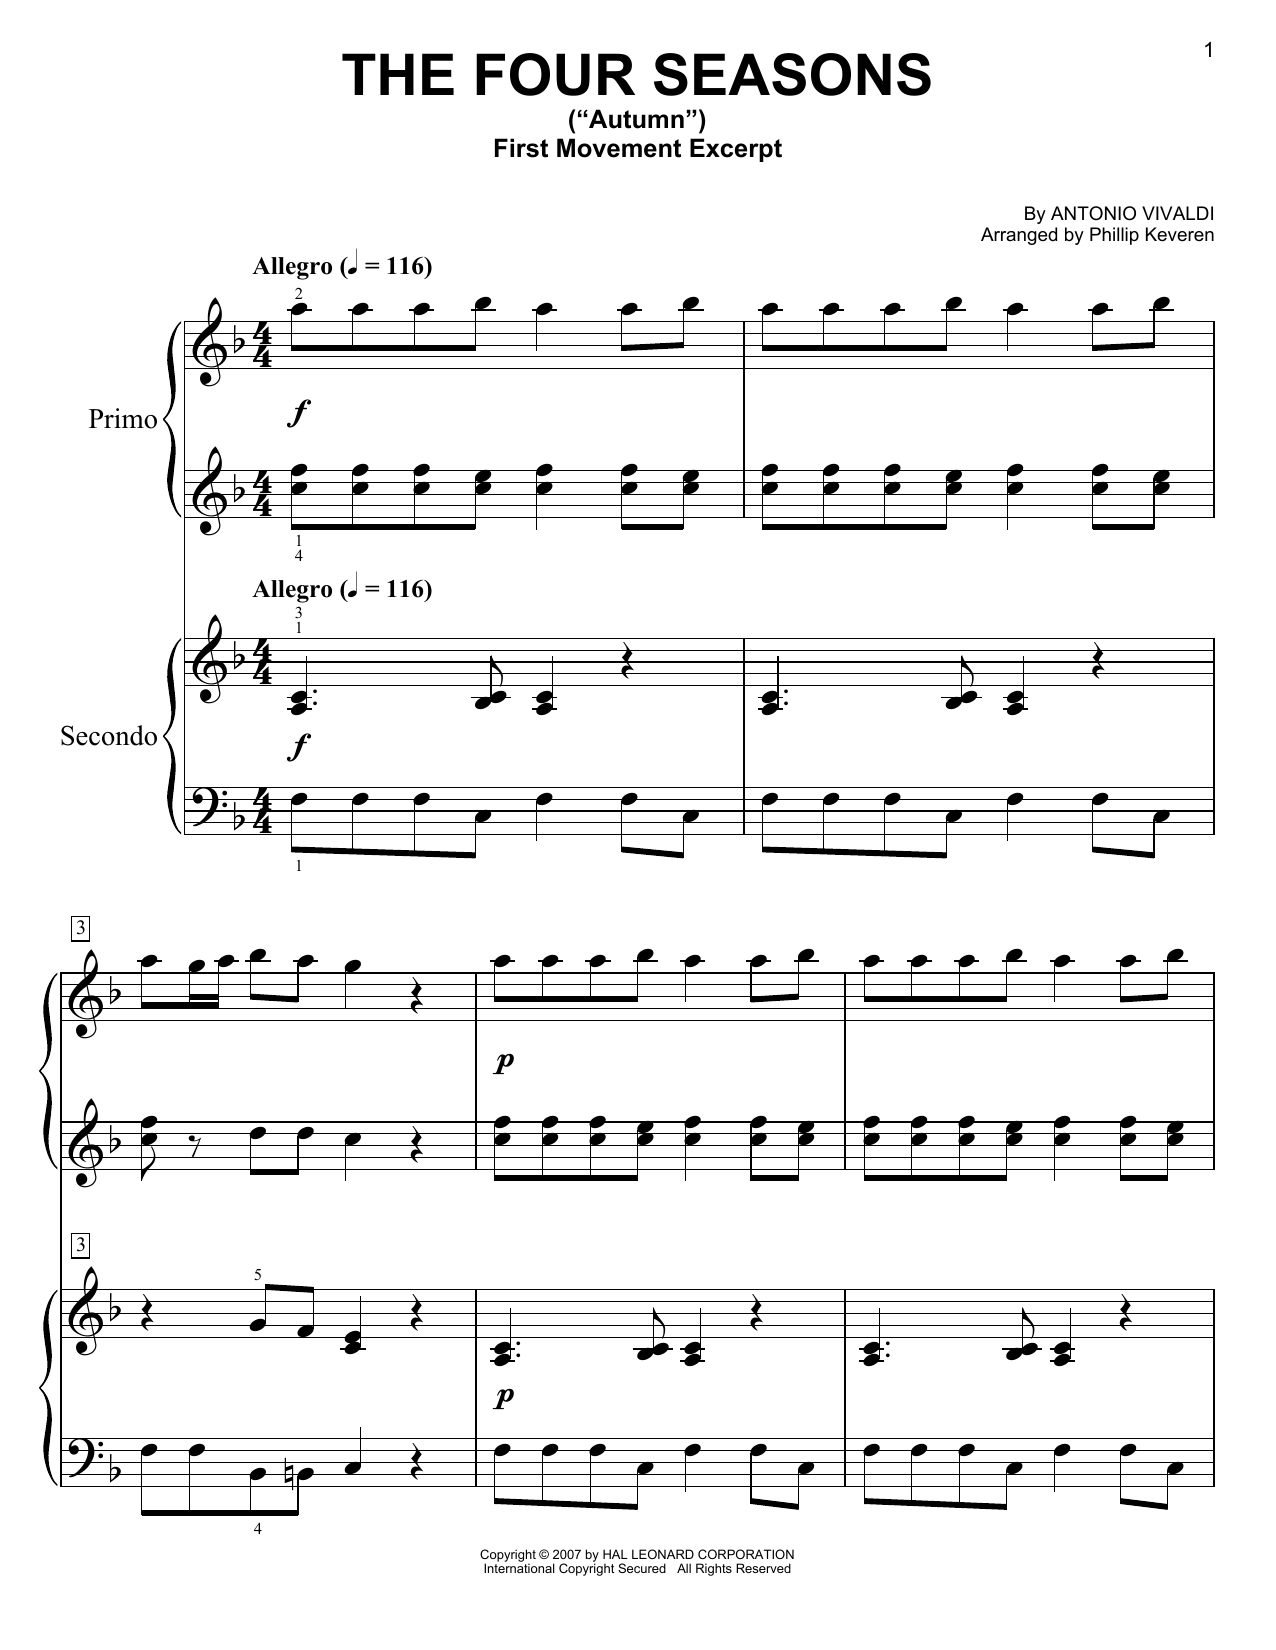 Sheet music digital files to print licensed antonio vivaldi sheet music digital files to print licensed antonio vivaldi digital sheet music hexwebz Images